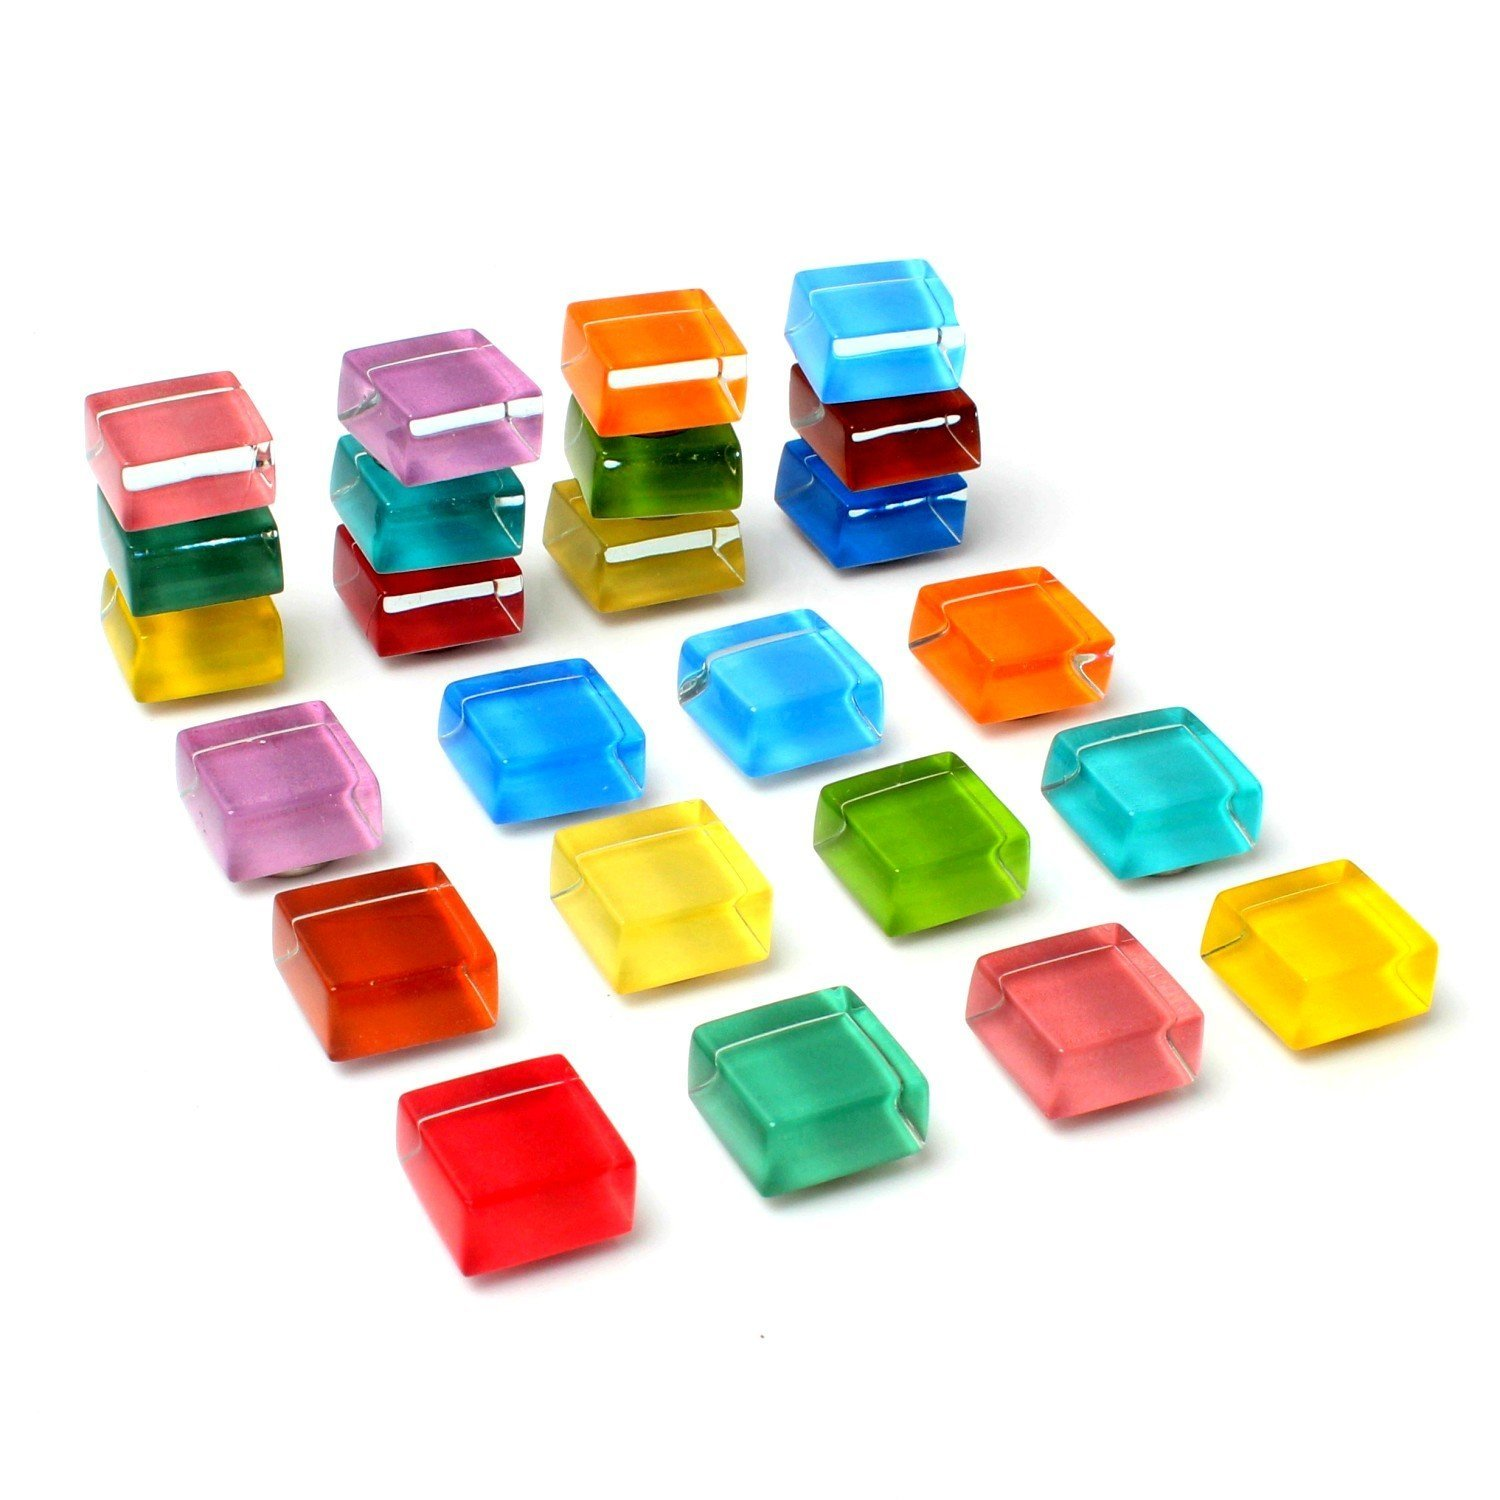 Fridge Magnets Strong Office Magnets Cute Refrigerator Magnets Kitchen Colorful Magnets Decorative Magnets for Refrigerator Magnets for Whiteboard Magnets for Dry Erase Board - Glass